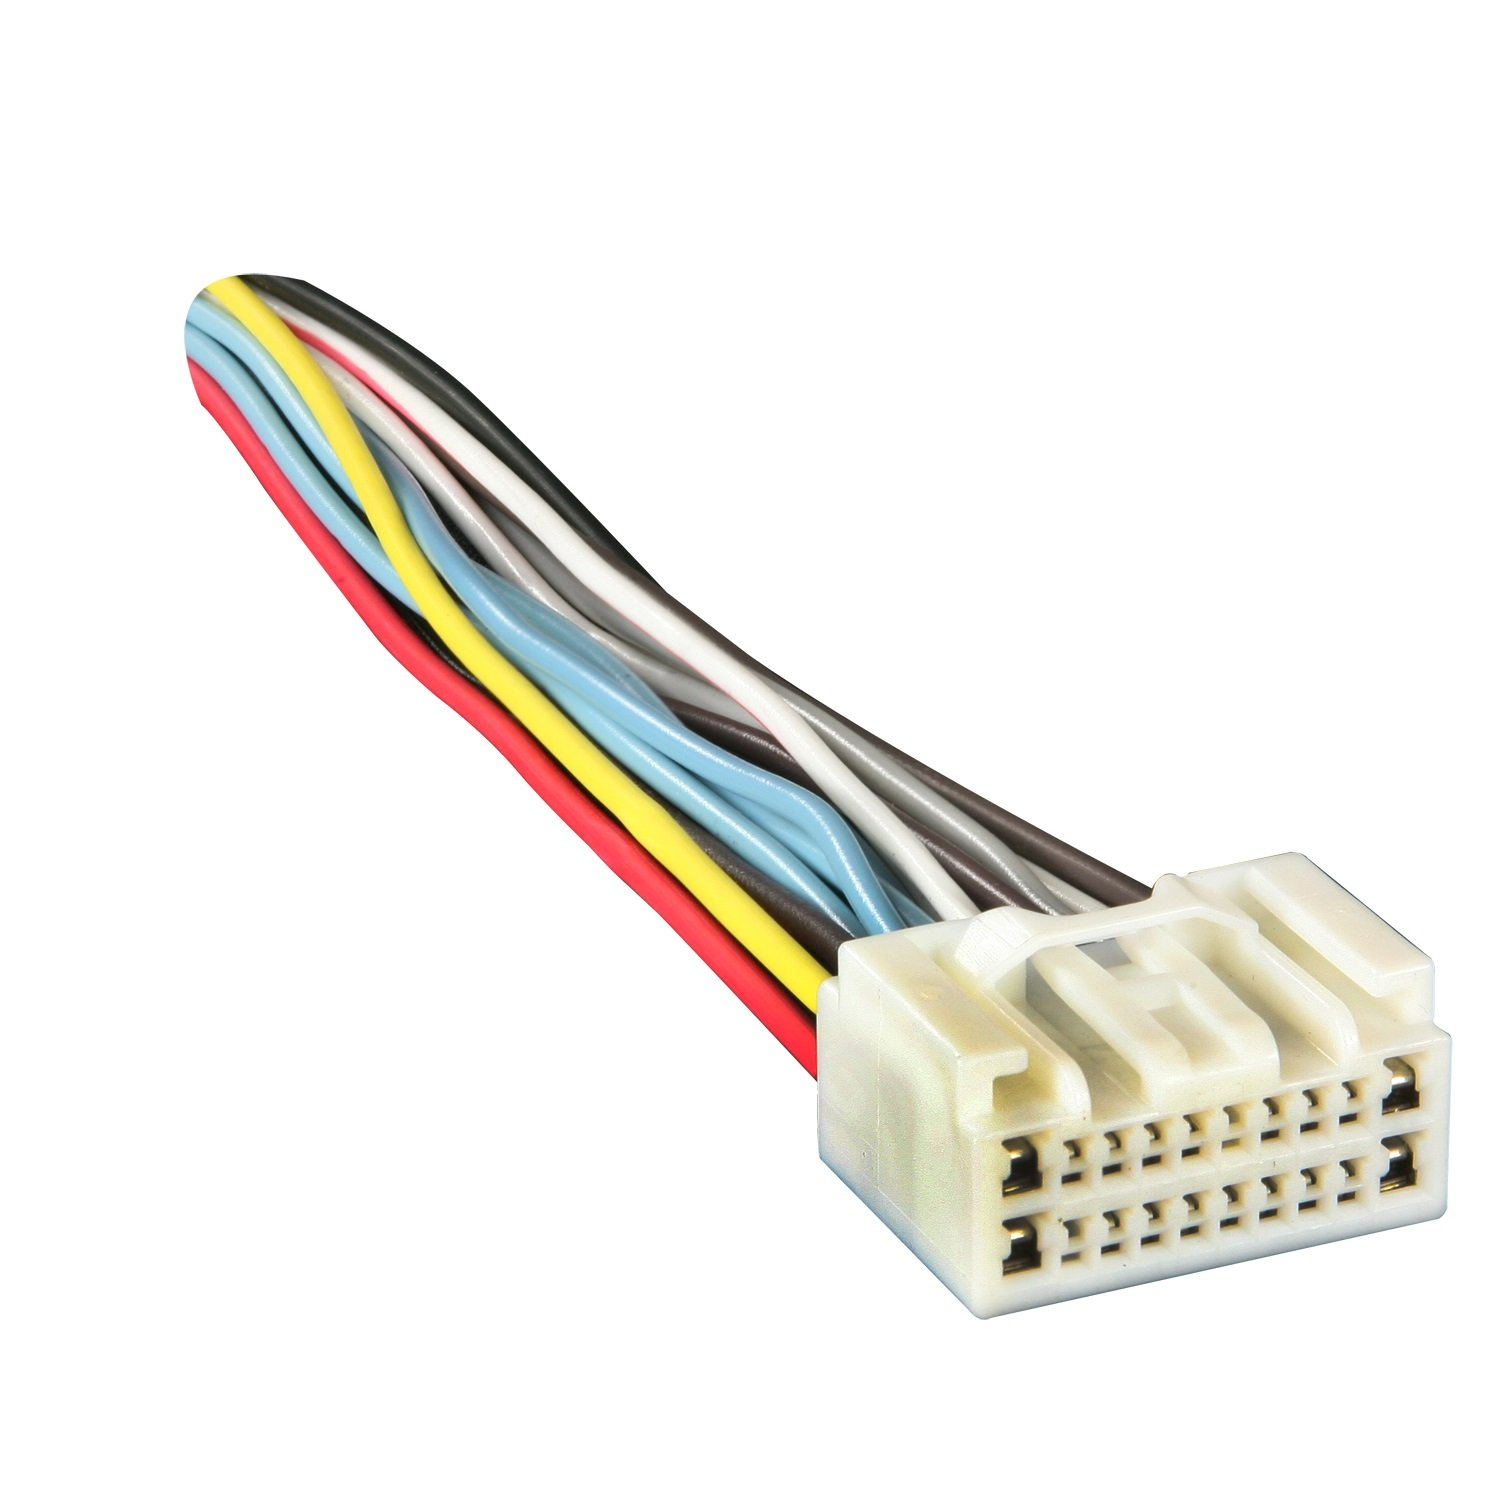 61k6eVpKLJL._SL1500_ amazon com metra 71 8113 reverse wiring harness for select 2000 stereo wiring harness at mifinder.co